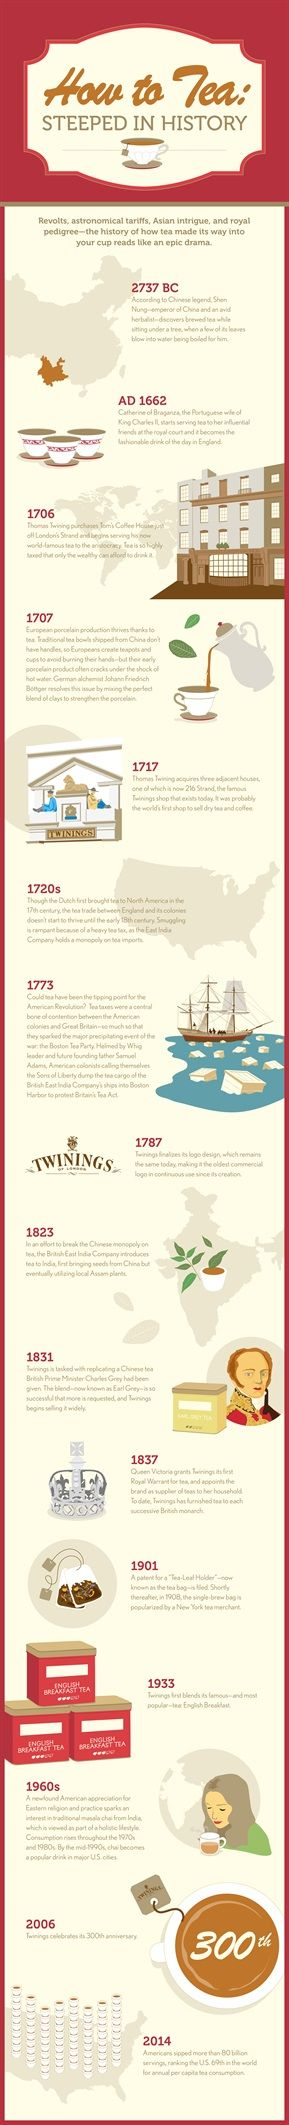 Tea history according to Twinings...Revolts, astronomical tariffs, Asian intrigue, and royal pedigree—the history of how tea made its way into your cup reads like an epic drama.